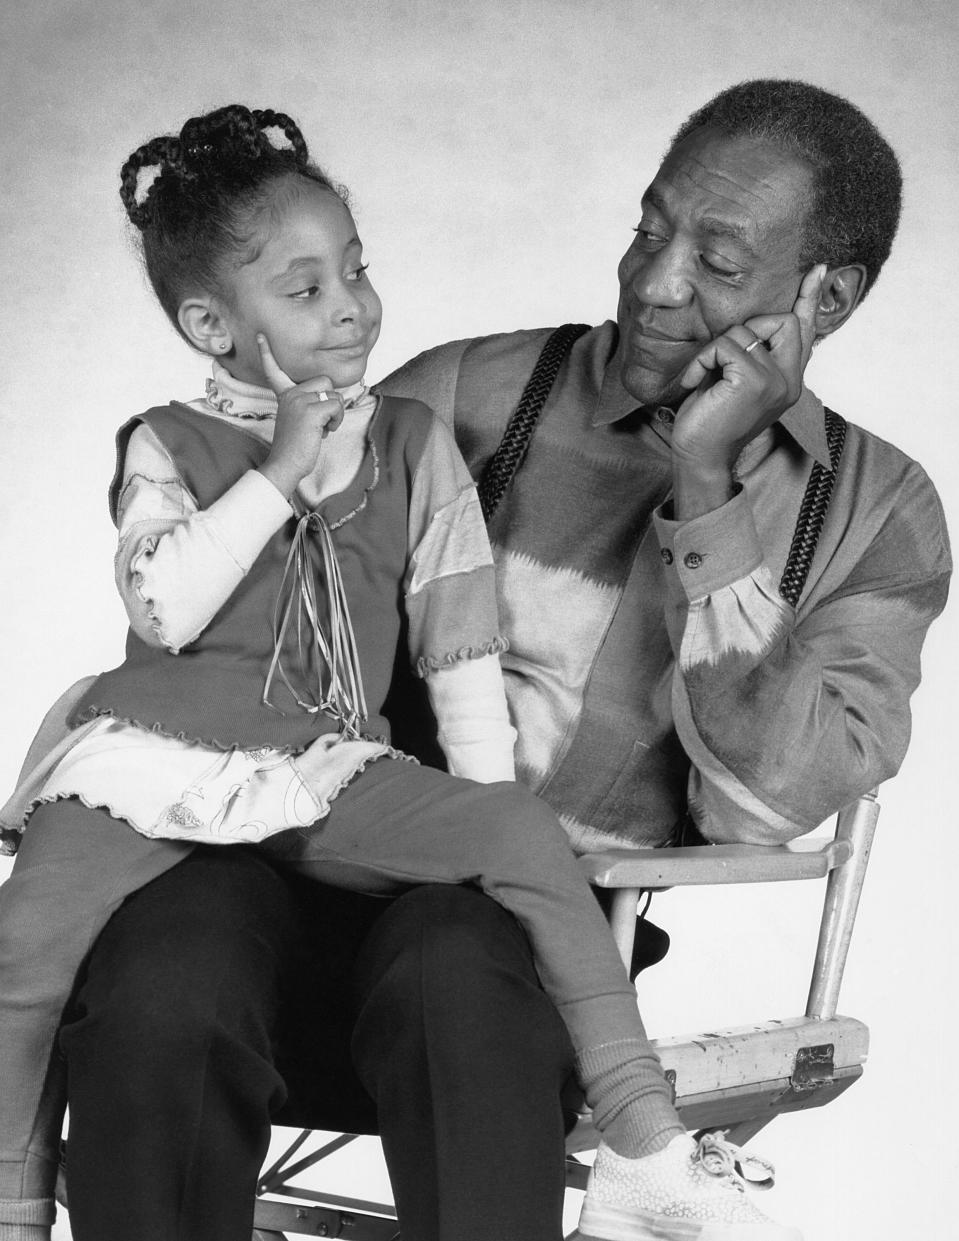 Raven-Symon as Olivia Kendall, Bill Cosby as Dr. Heathcliff 'Cliff' Huxtable (Alan Singer/NBCU Photo Bank/NBCUniversal via Getty Images via Getty Images)